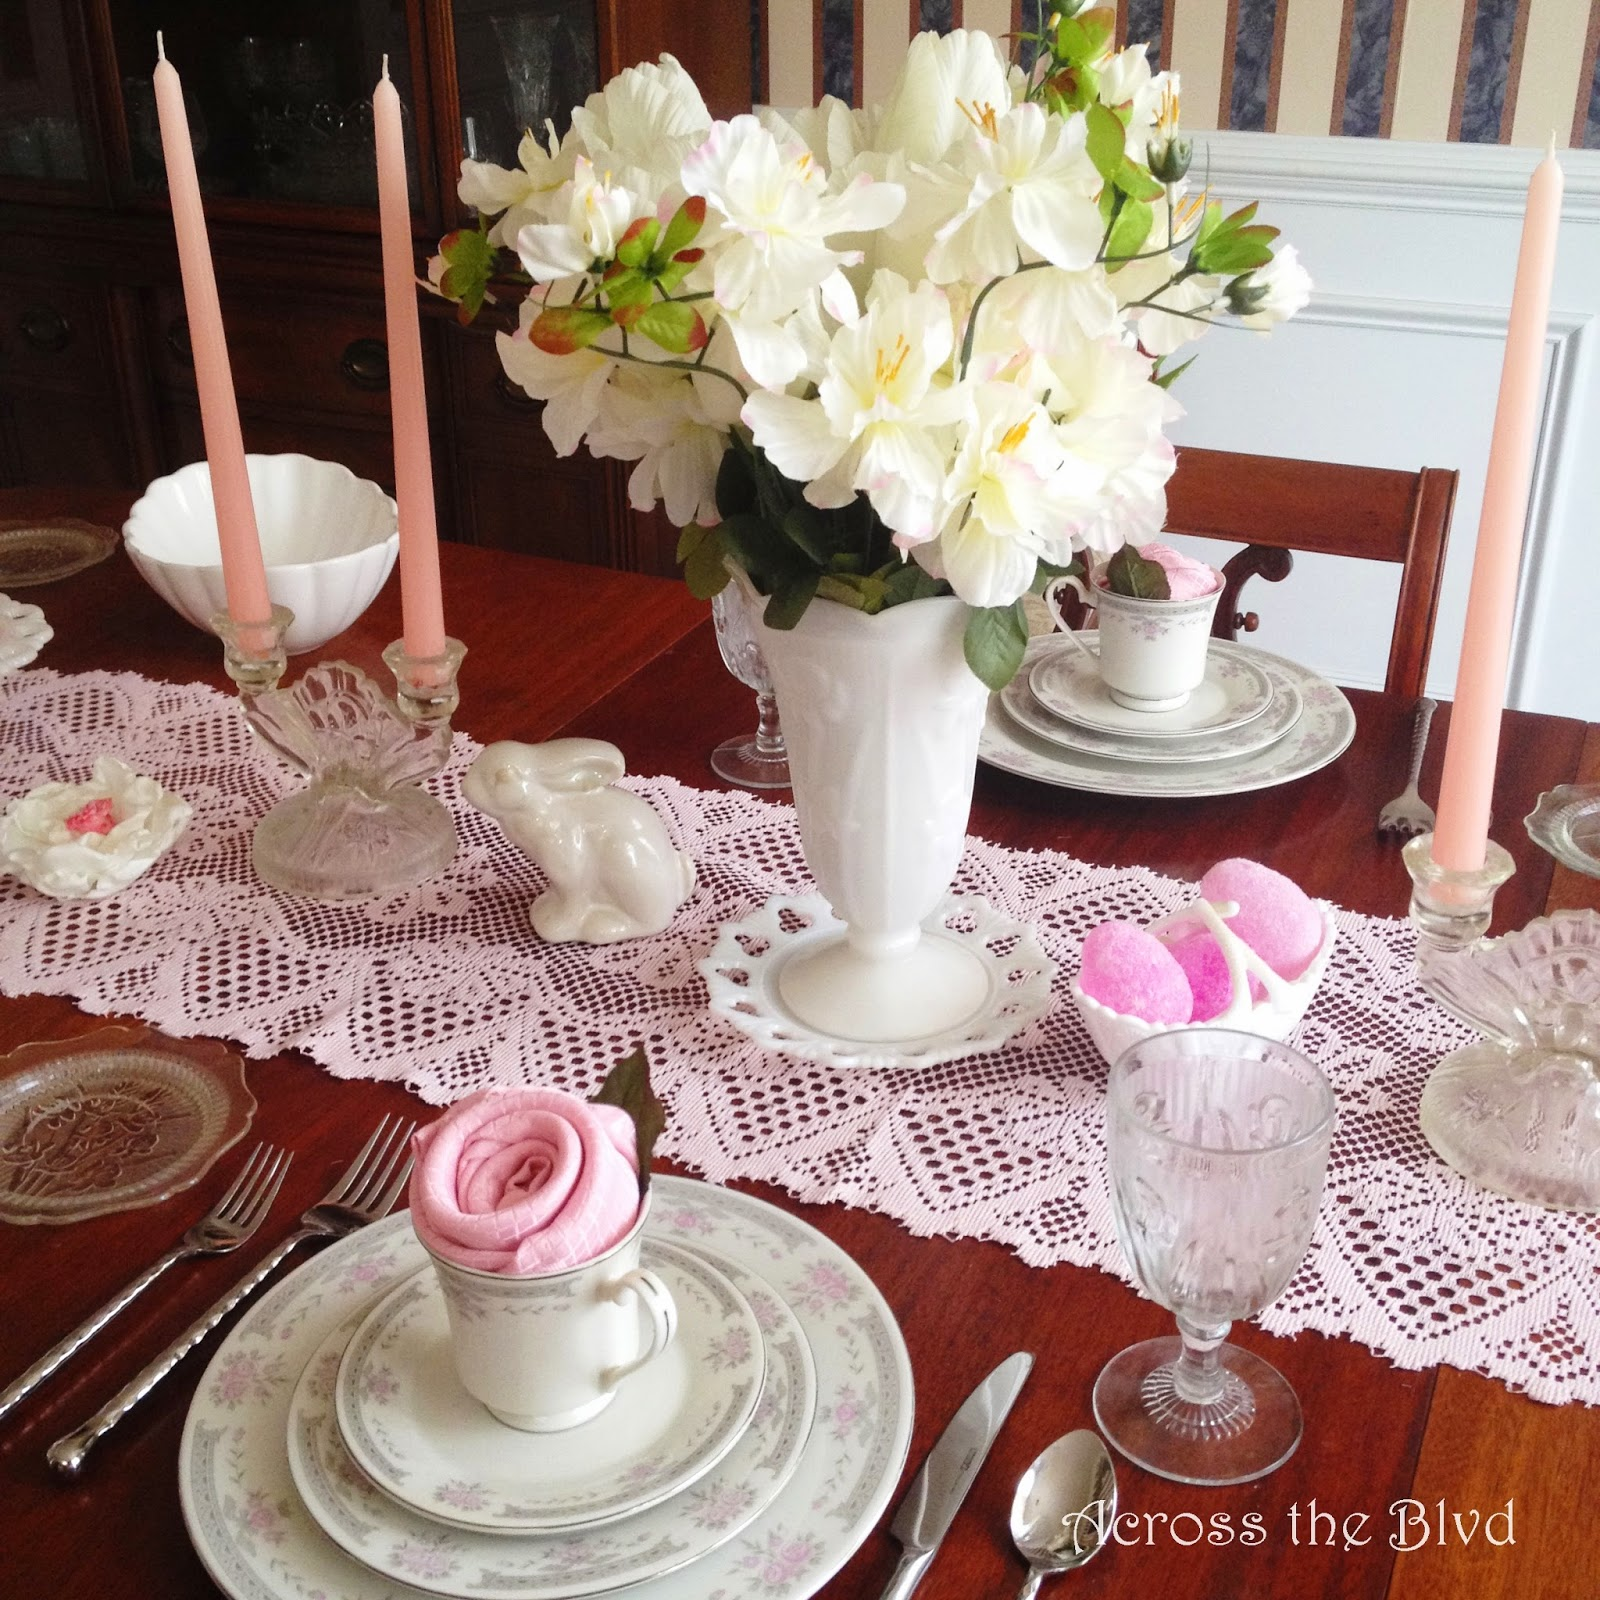 Easter Tablescape~Across the Blvd~Vintage & DIY Decor